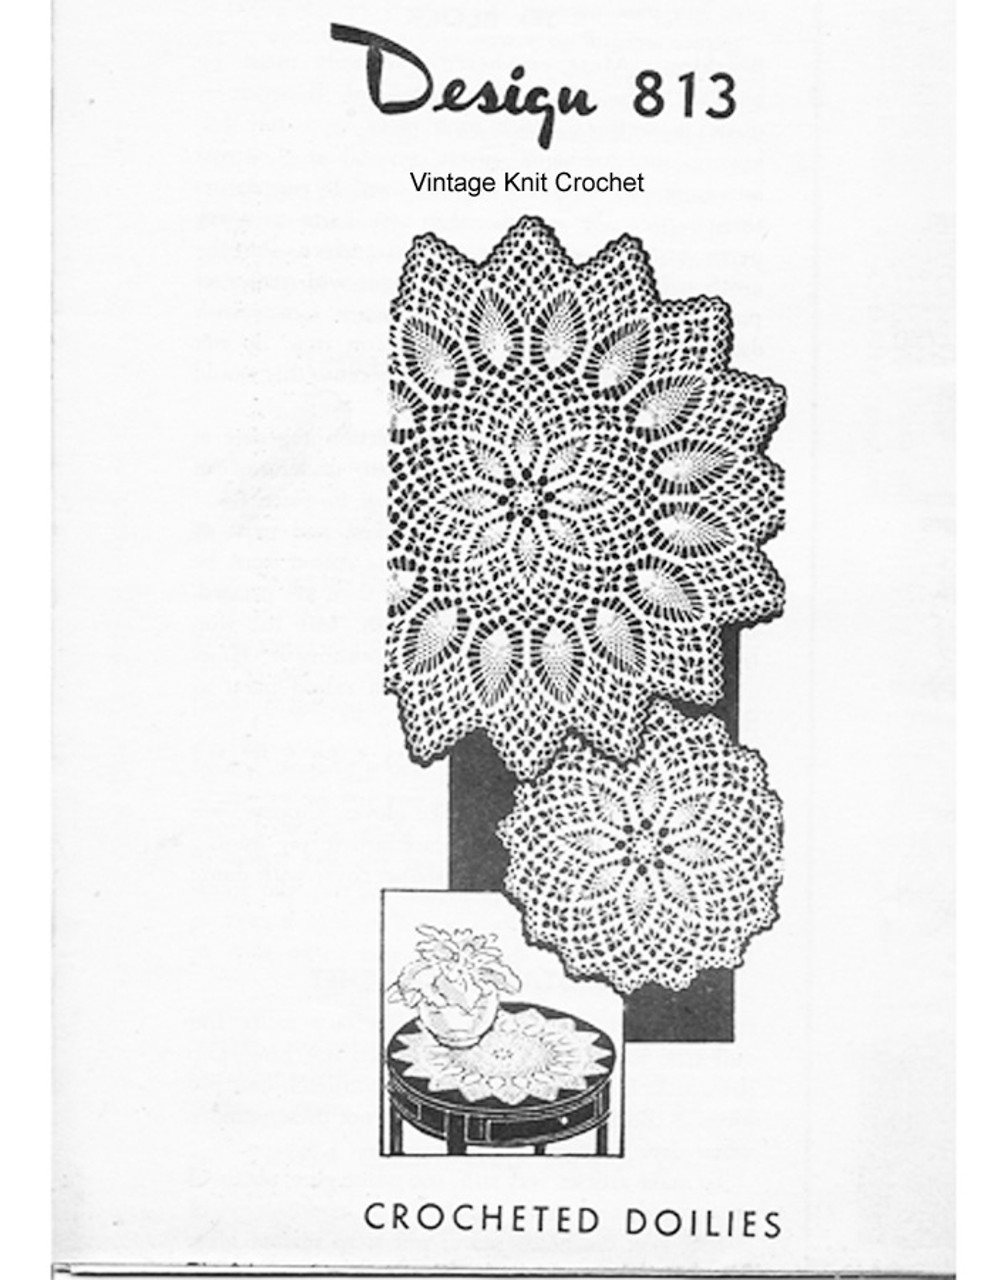 Spiderweb Crochet Pineapple Doily Pattern, Design 813